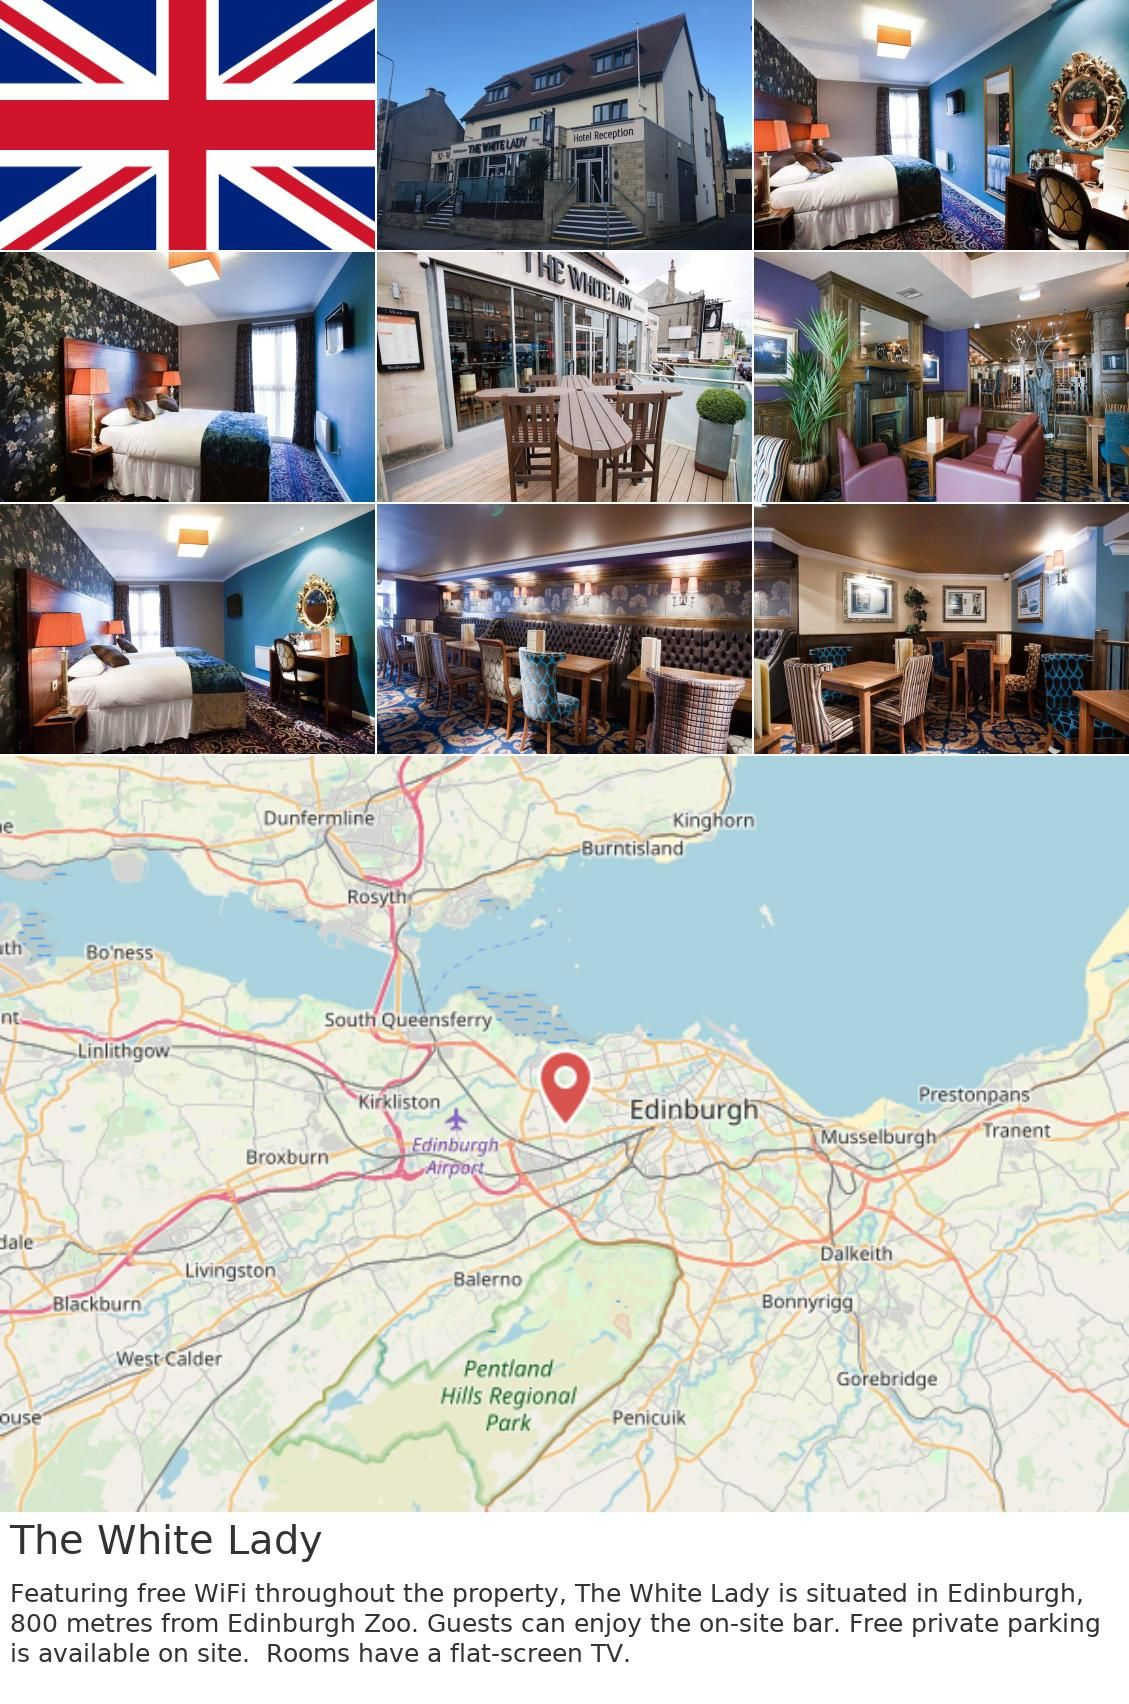 Britain Uk Edinburgh The White Lady Featuring Free Wifi Throughout The Property The White Lady Is Situated In Edinburgh 800 Metres From Edinburgh Zoo Gue